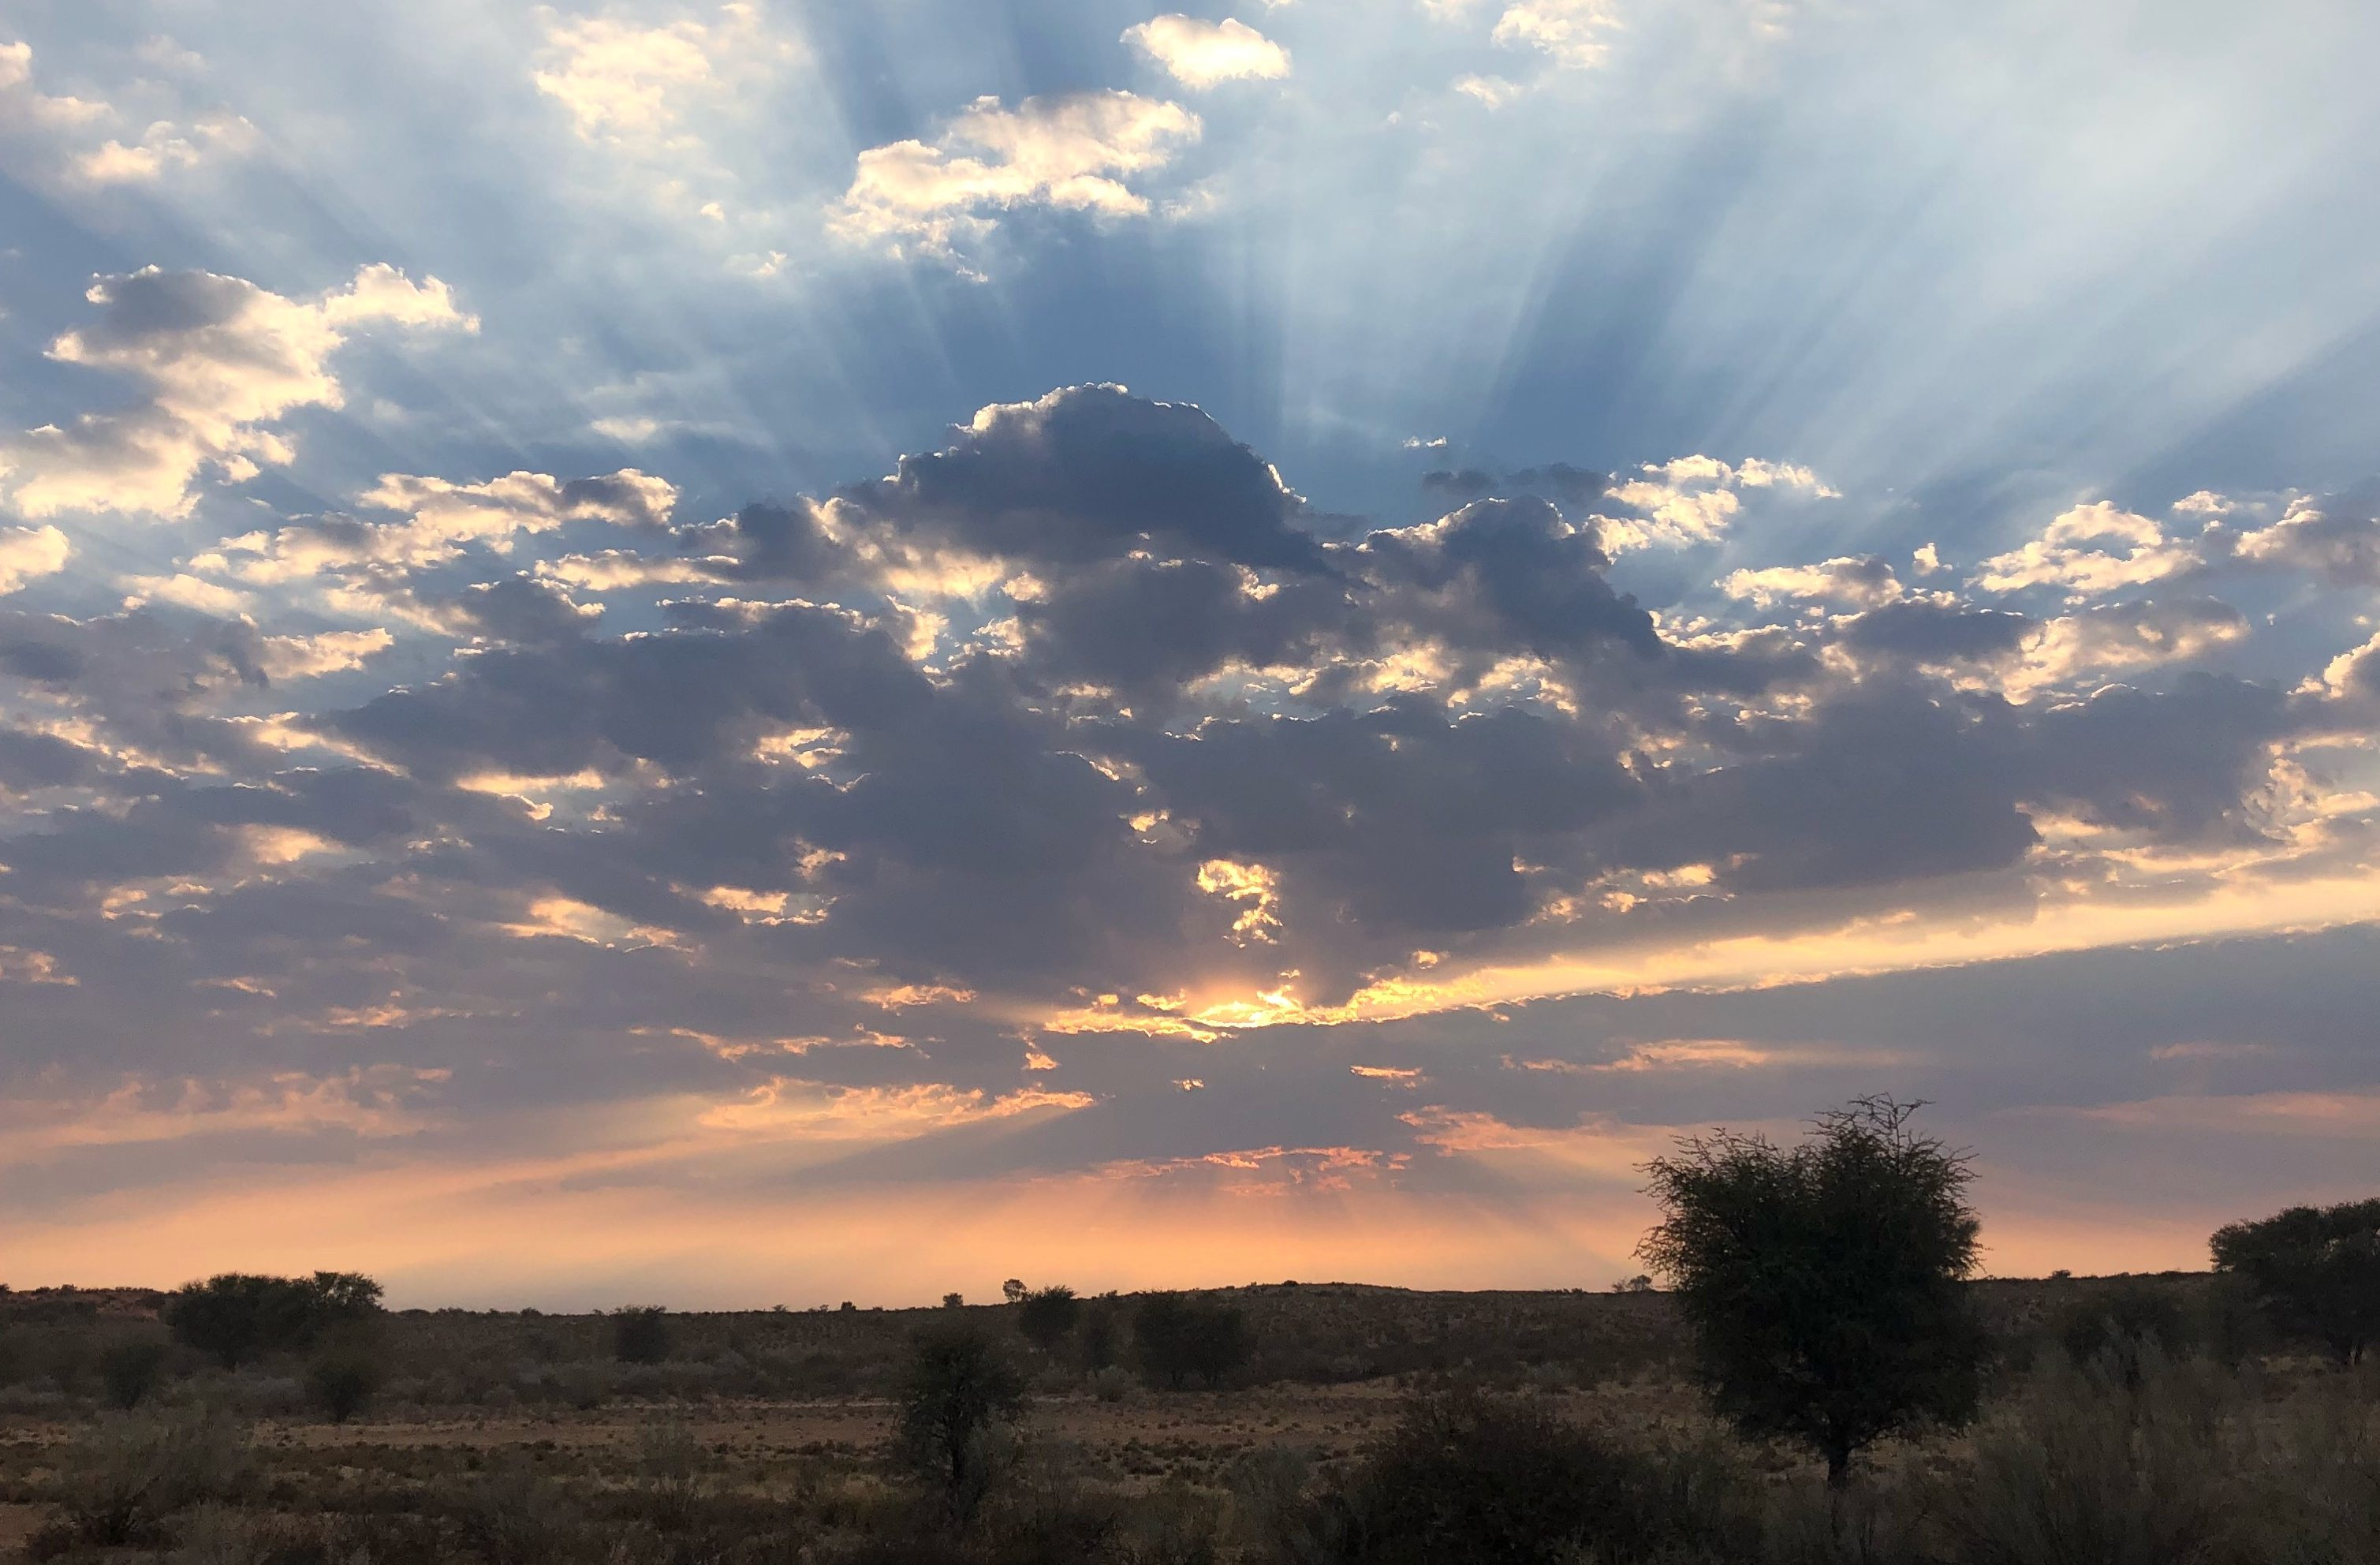 Africa – A Place of Extremes